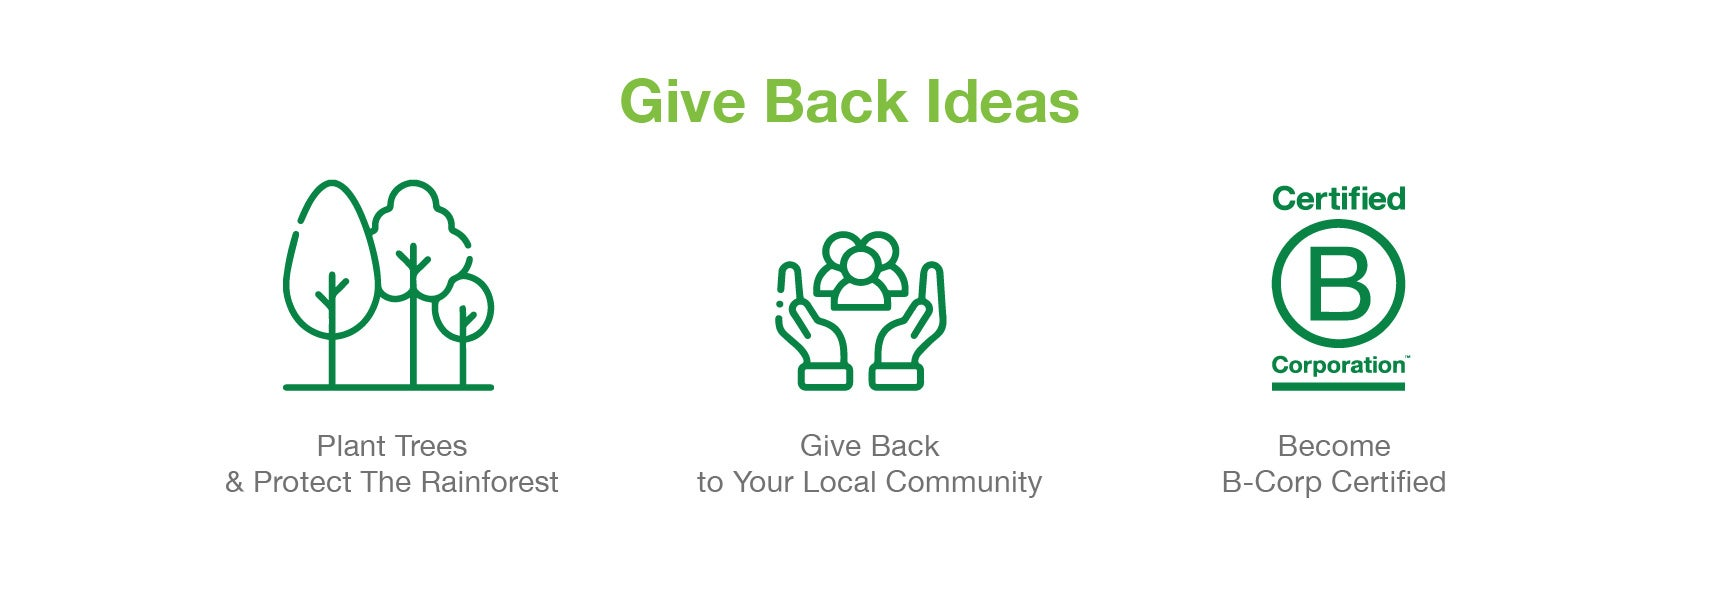 give-back-icons-01.jpg